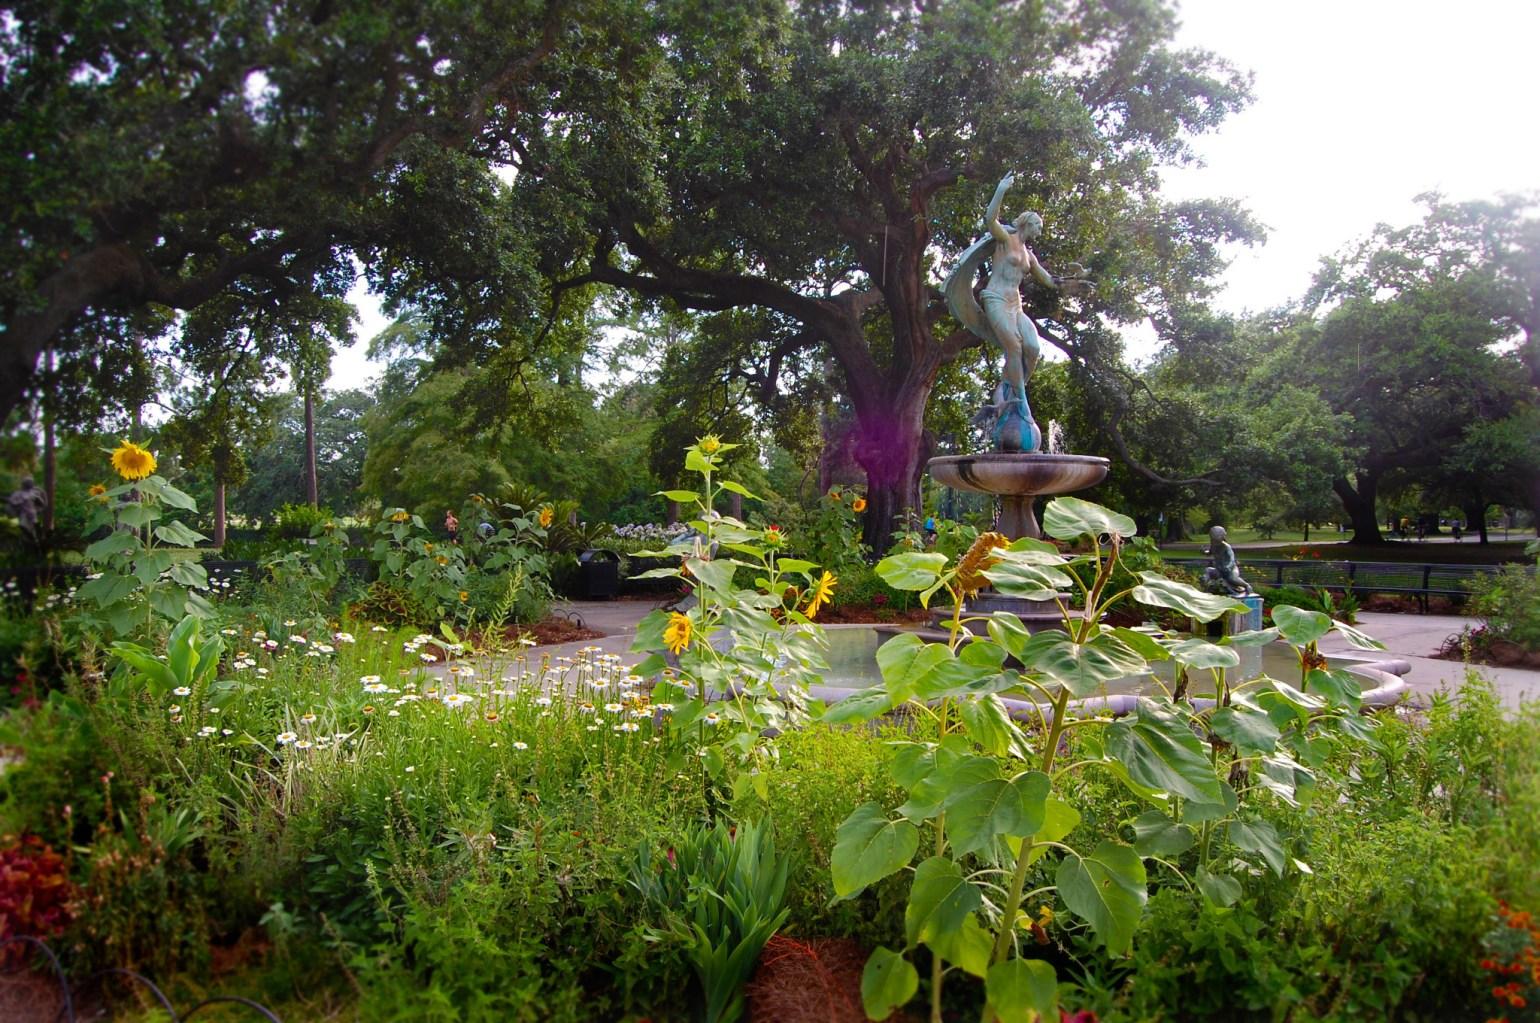 Flora, fauna, and fountain in Audubon Park. (Photo: Anna-Marie Babington)